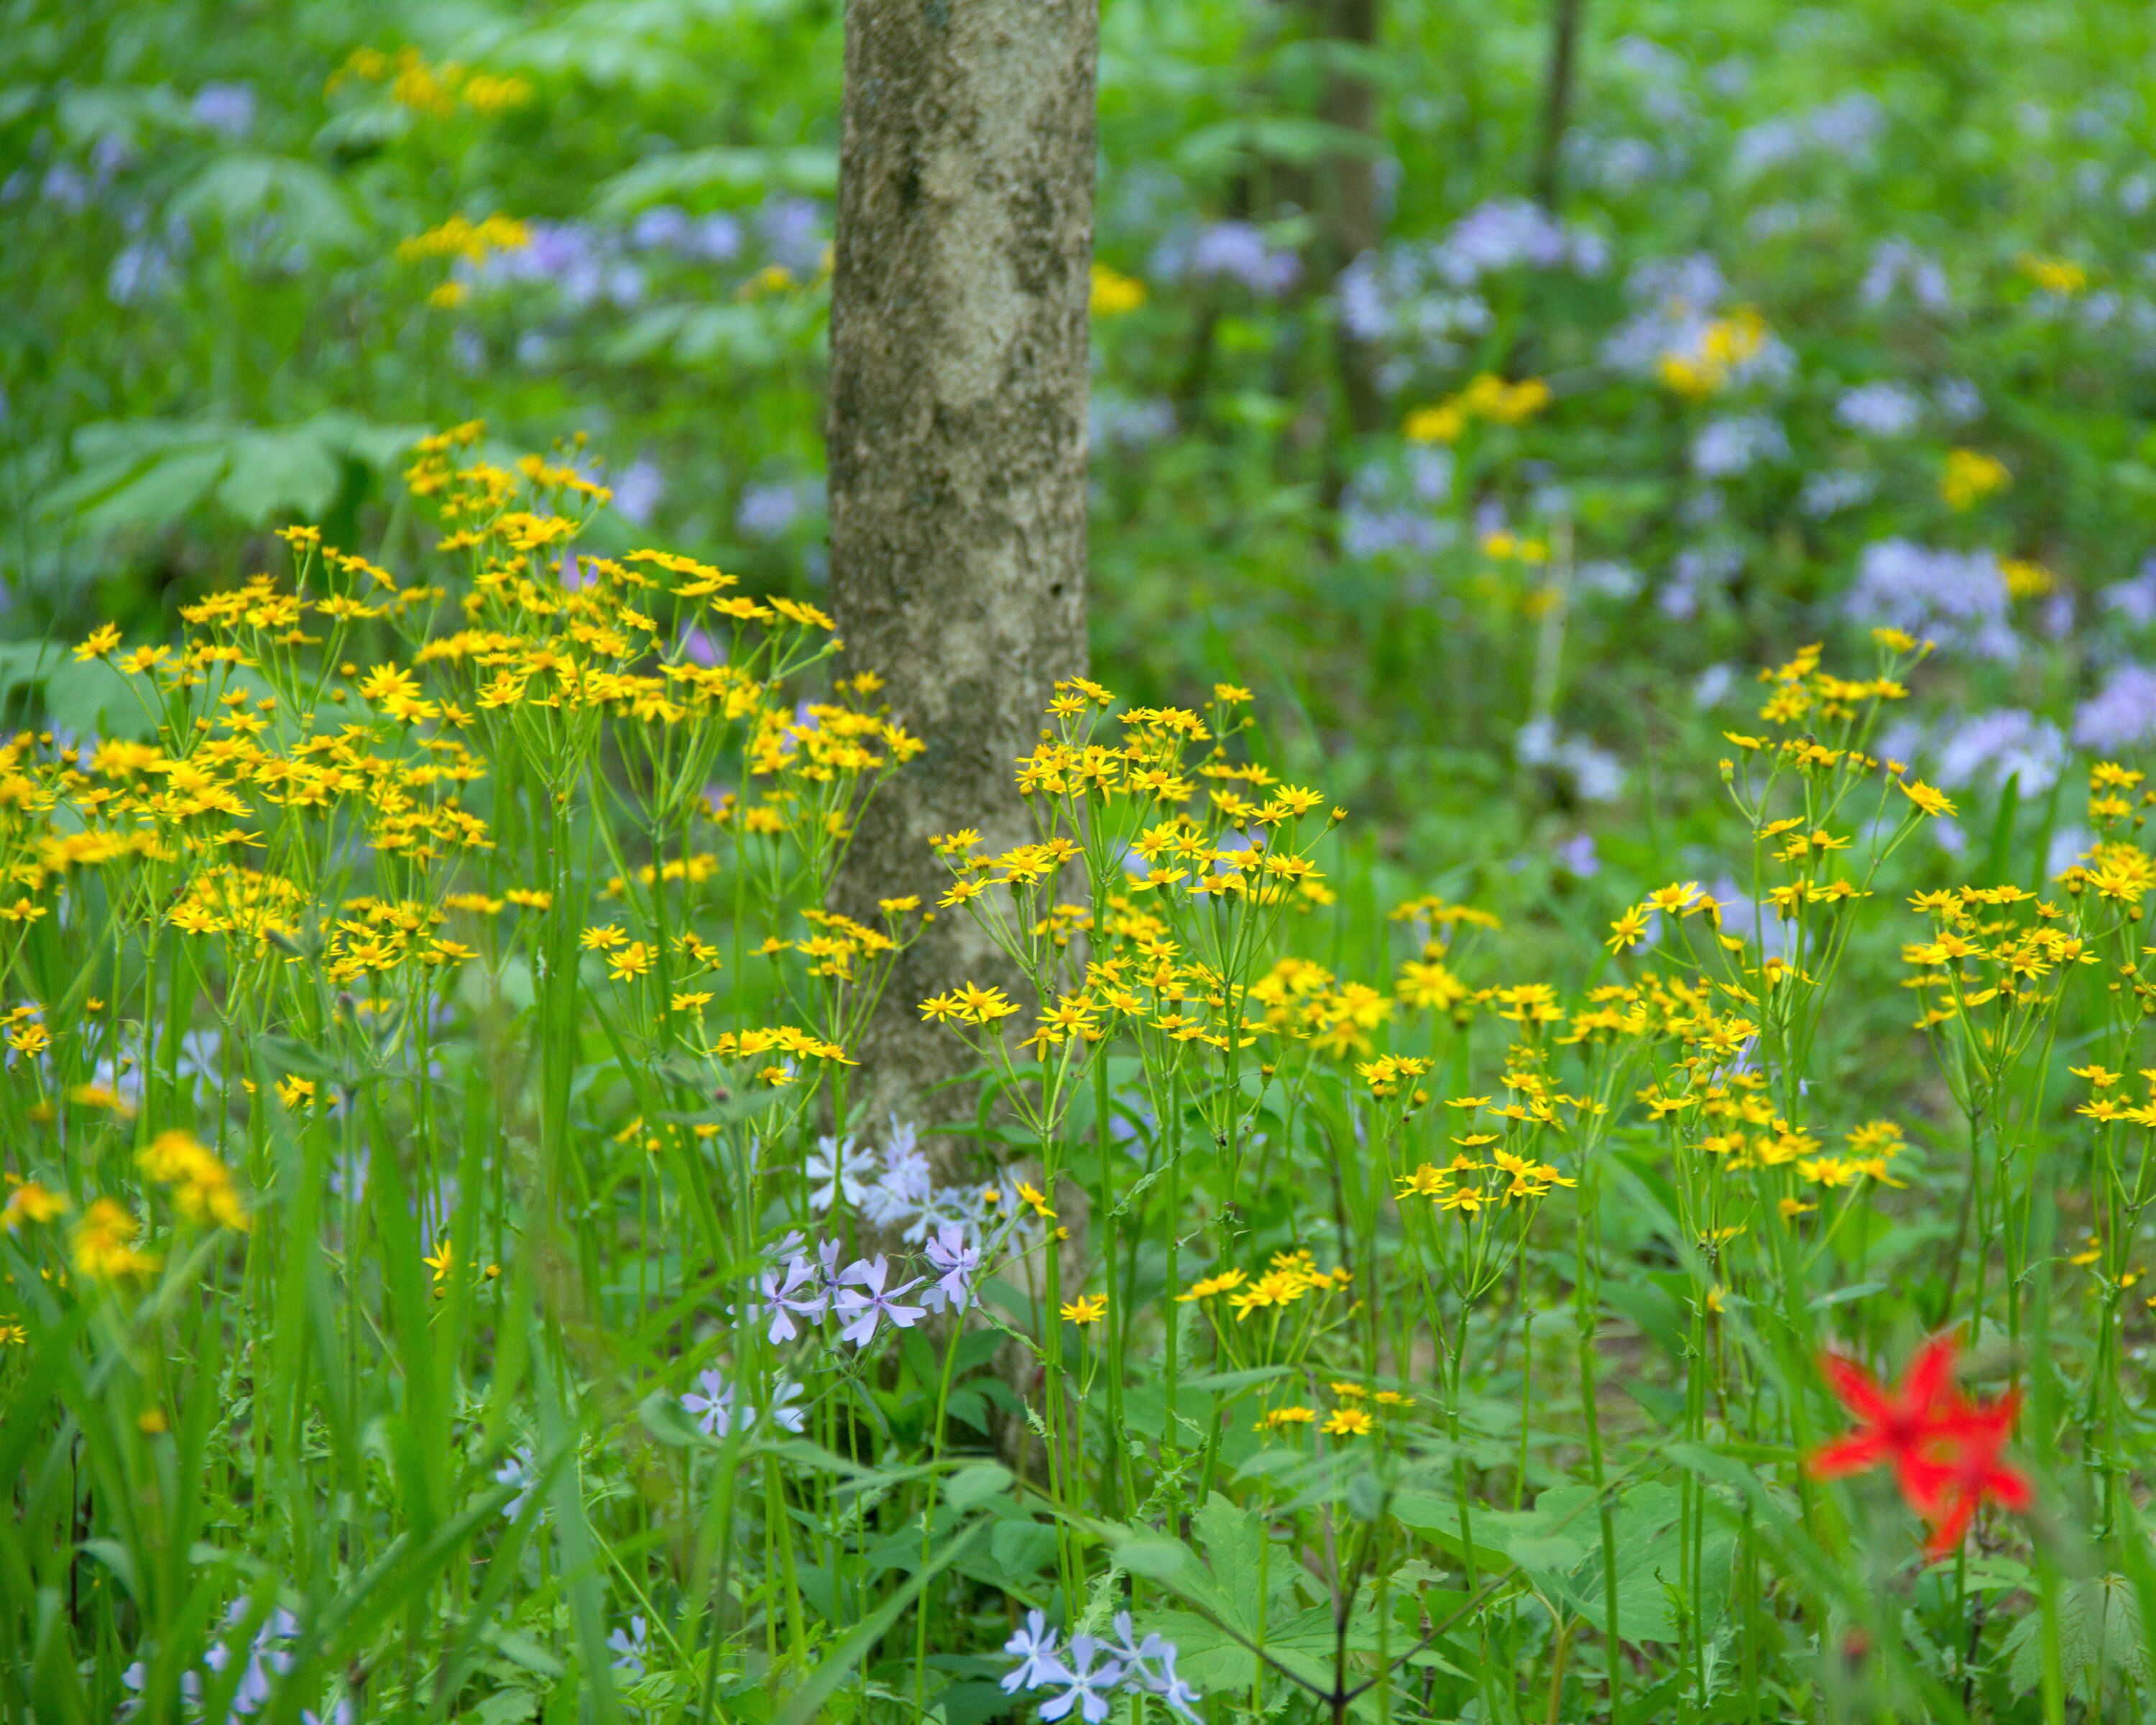 Wild Flowers Woodland Photography Yellow Flower Red Flower Nature Print Landscape Photography Large Wall Decor Country Chic Entryway Wall Decor Design Large Wall Decor Butterfly Wall Decor